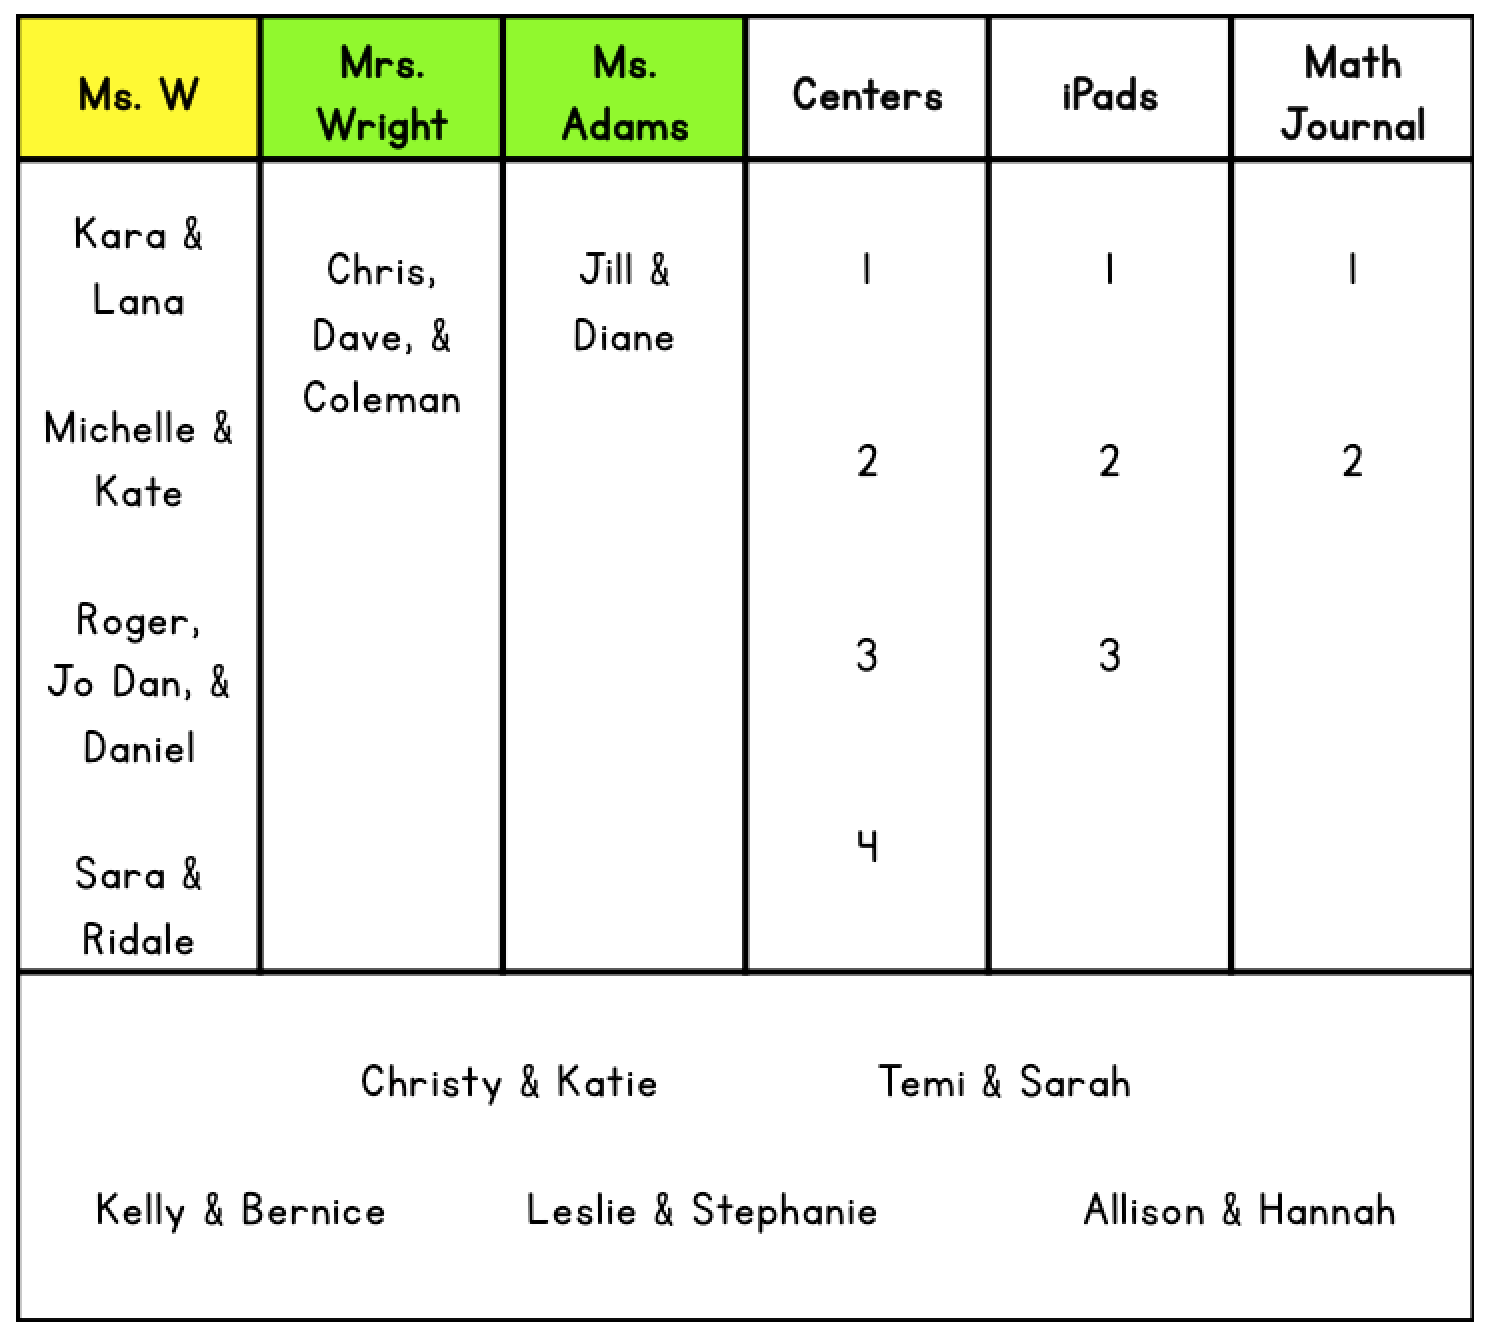 Overwhelmed by math centers? Check out these SIMPLE ideas for create predictable patterns and routines that allow for streamlined planning!